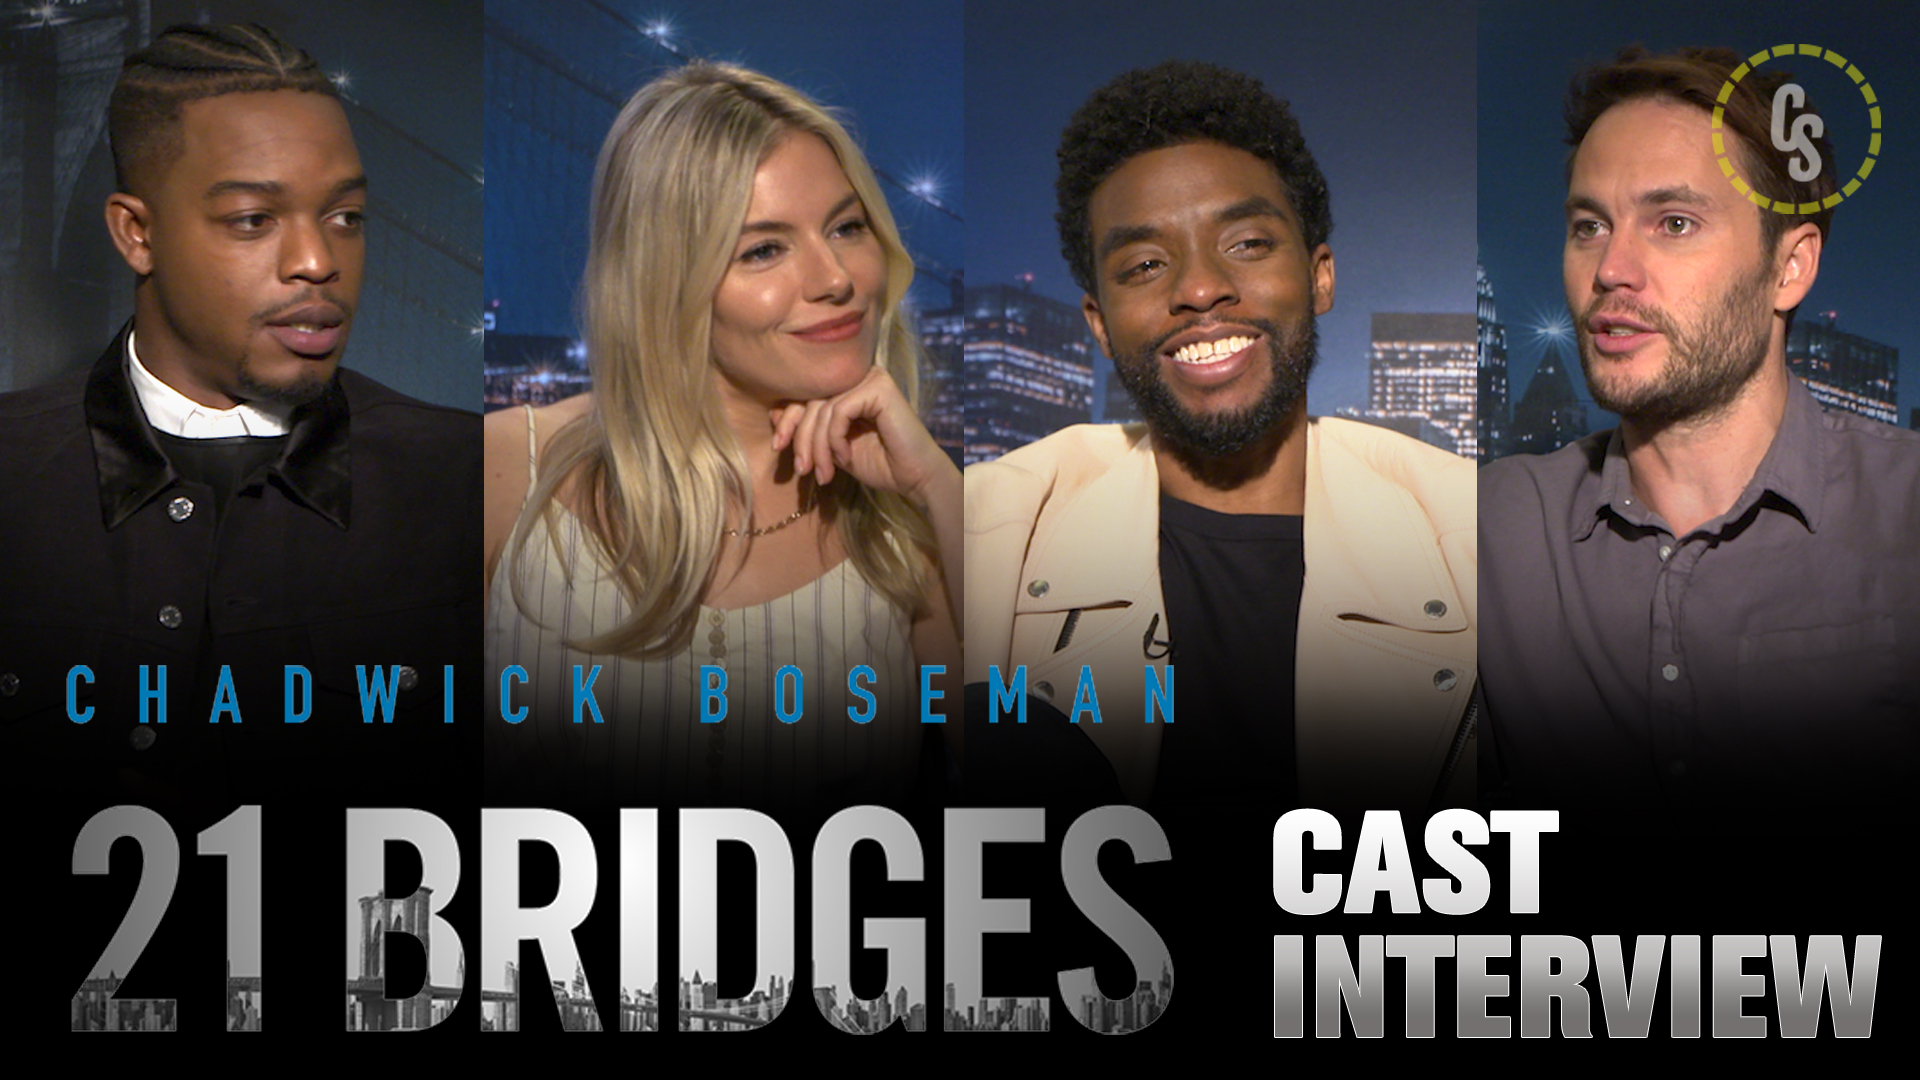 CS Video: Chadwick Boseman